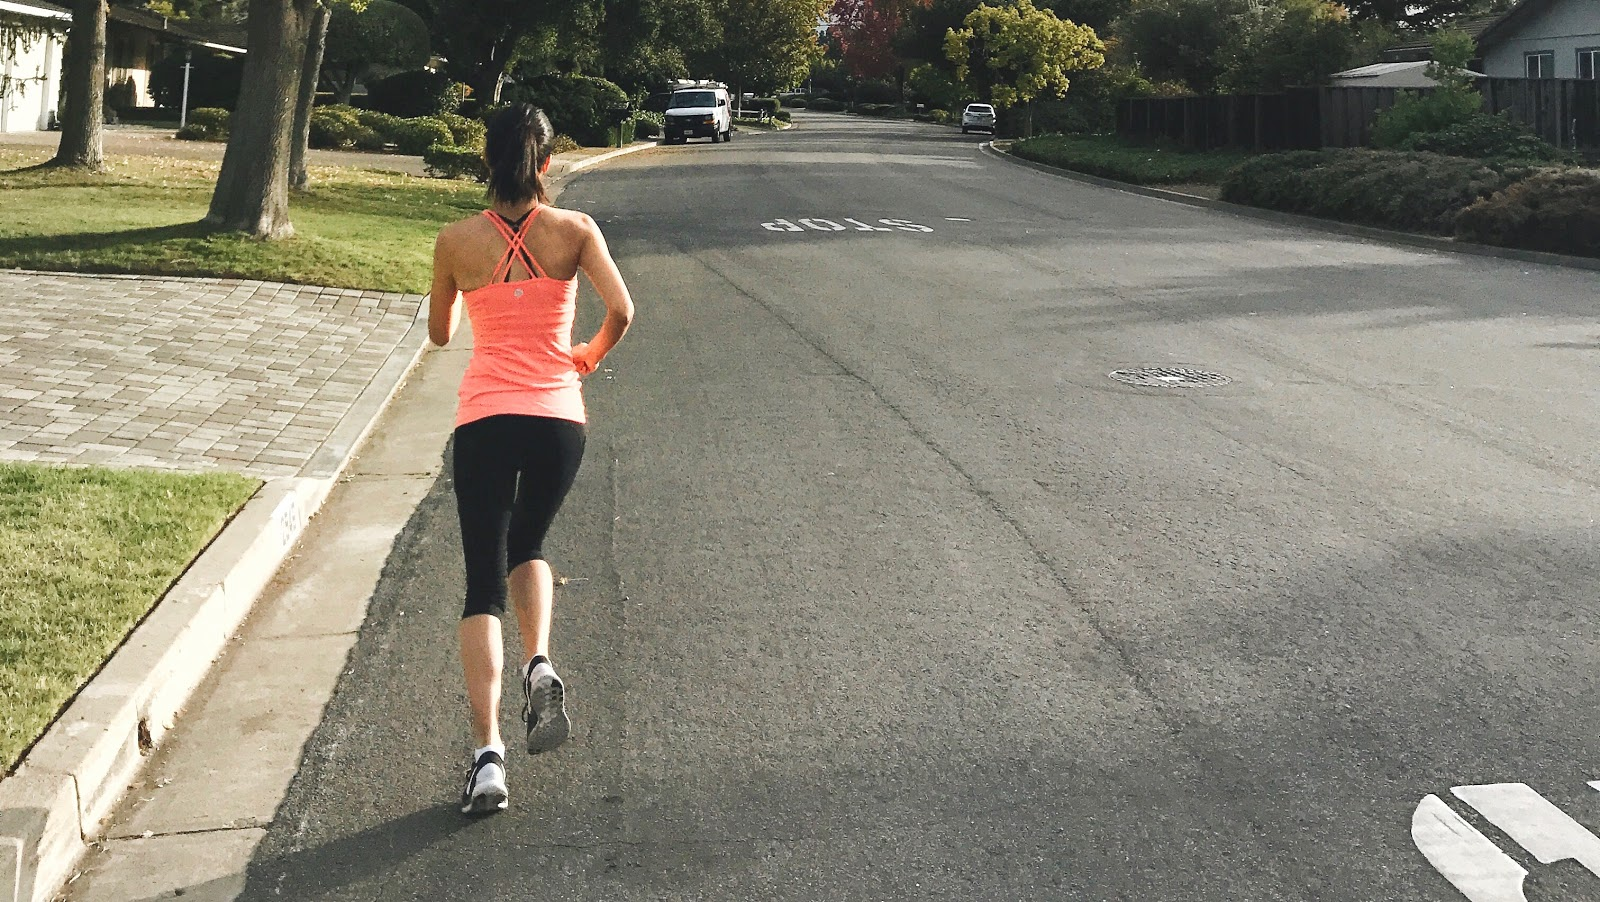 Jen on a run. Read on to find out how she keeps her acne-prone skin clear after an intense sweat sesh.